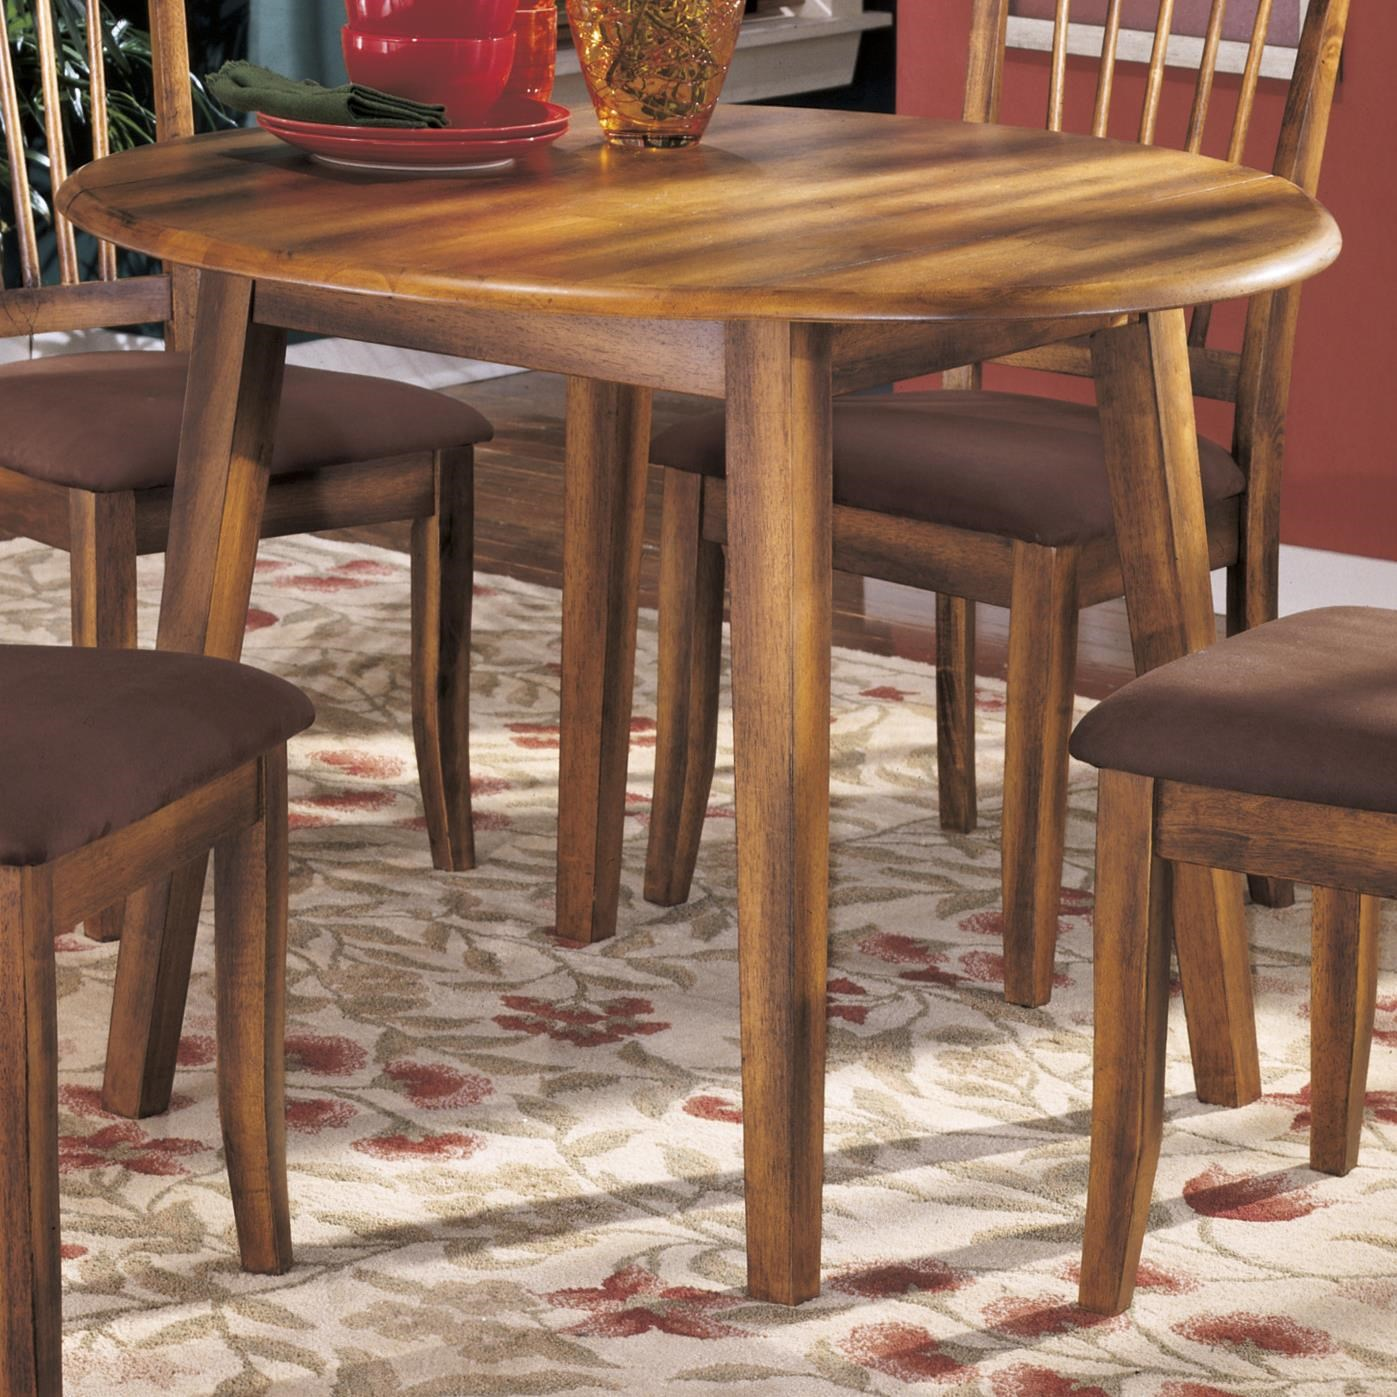 Ashley Furniture Berringer Hickory Stained Hardwood Round Drop Leaf Table    Becker Furniture World   Kitchen Tables